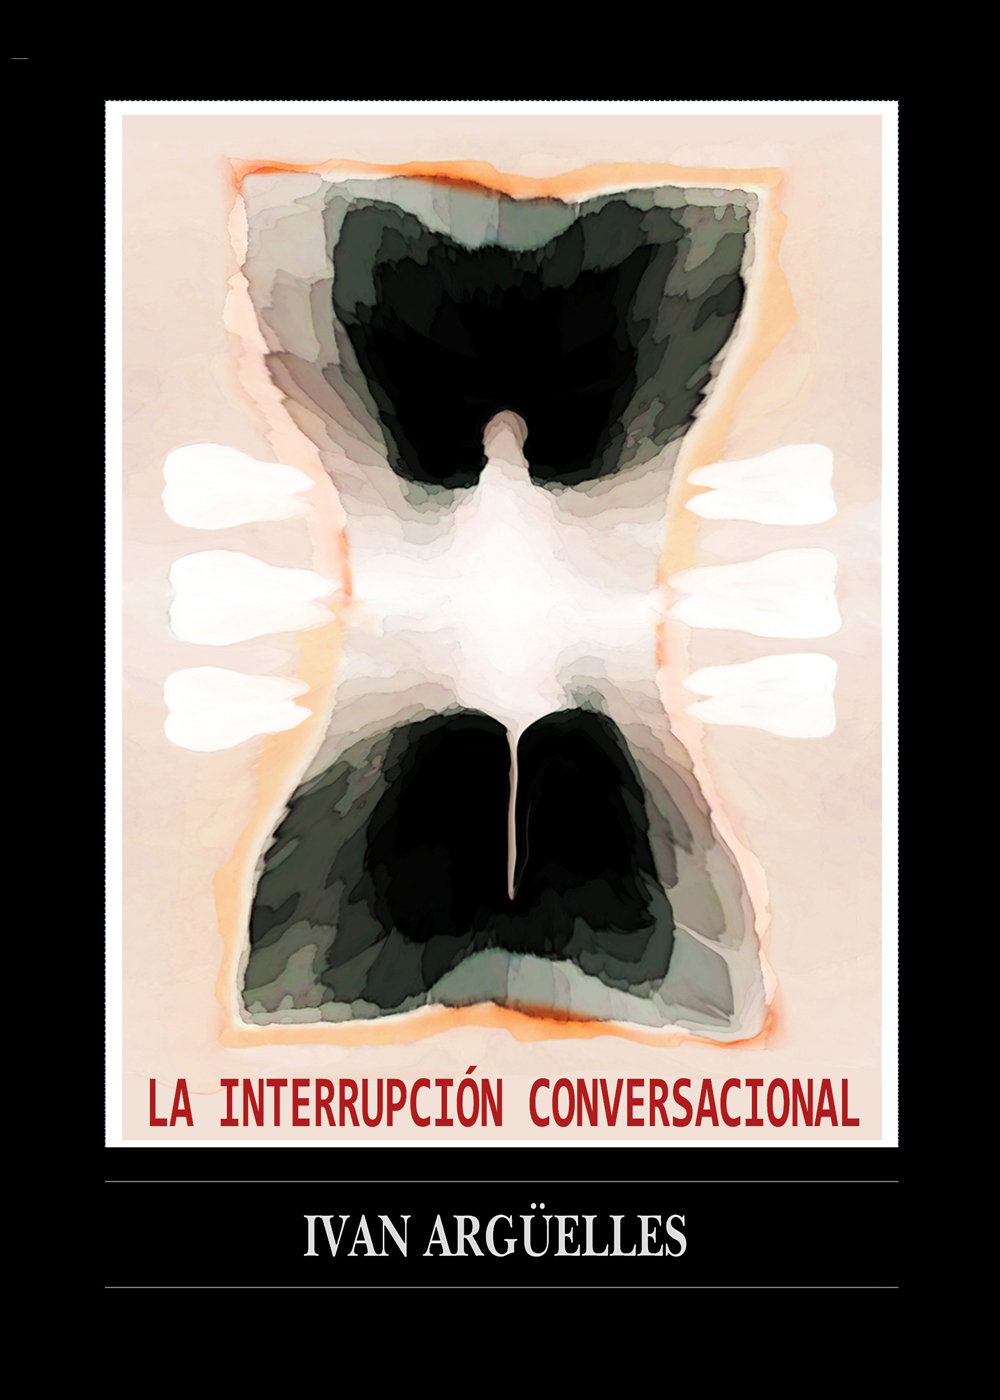 La Interrupcion Conversacional